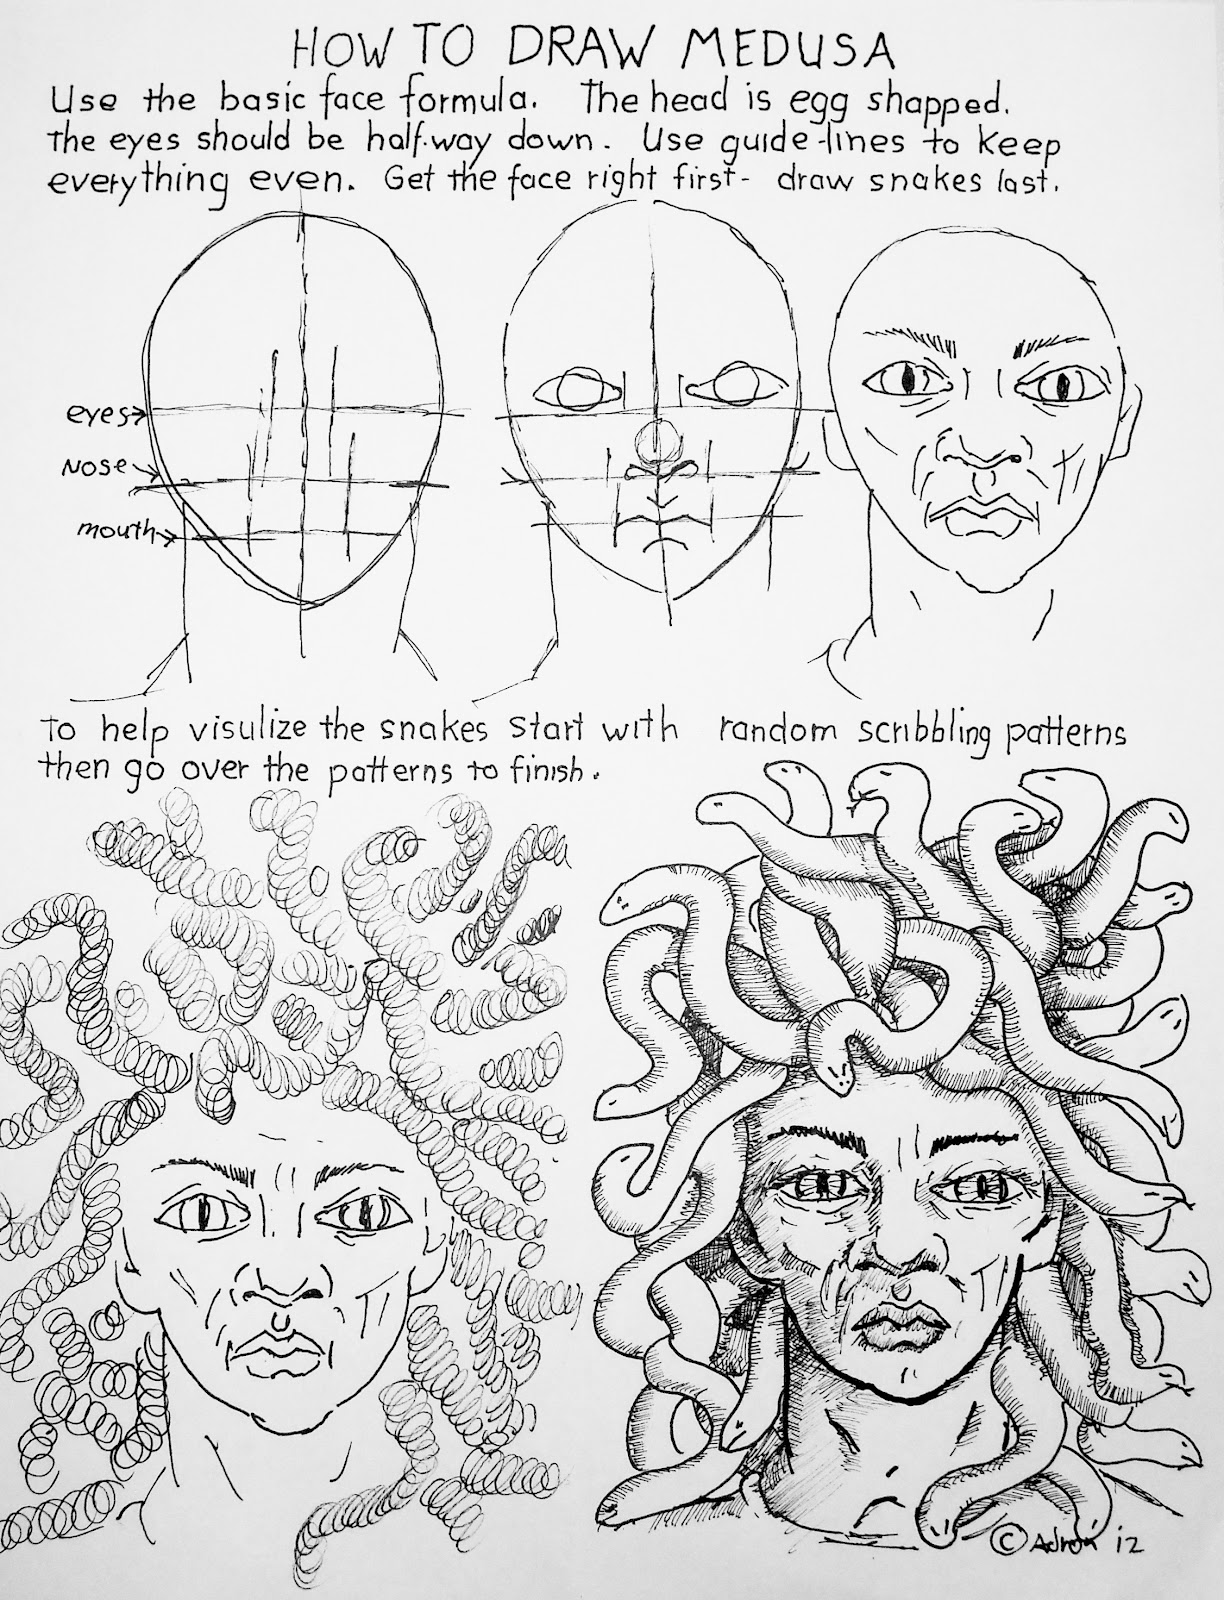 How To Draw Worksheets For The Young Artist How To Draw Medusa Face With Snakes Worksheet